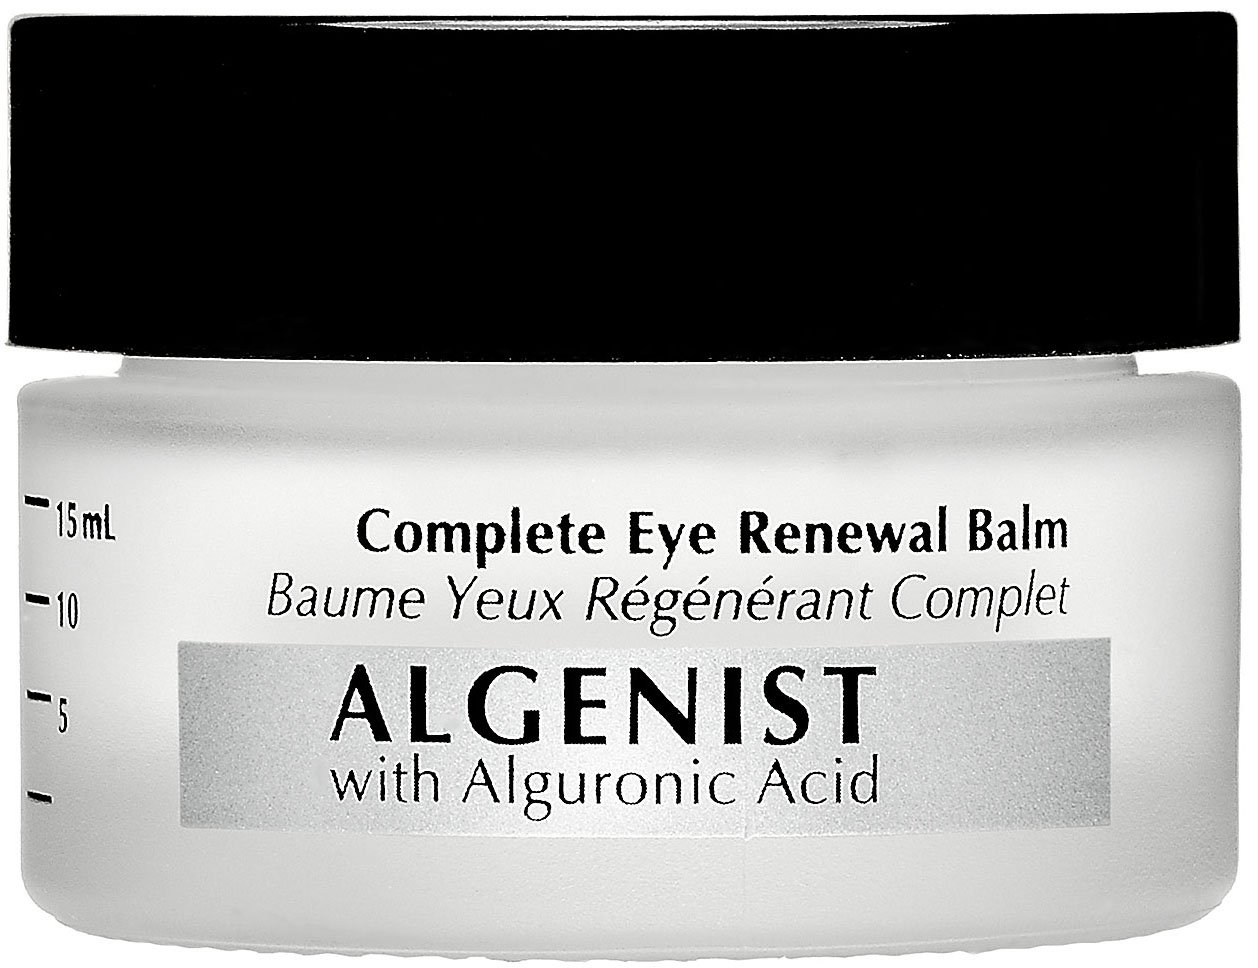 Algenist Complete Eye Renewal Balm for Women-0.5-Ounce W-SC-2455